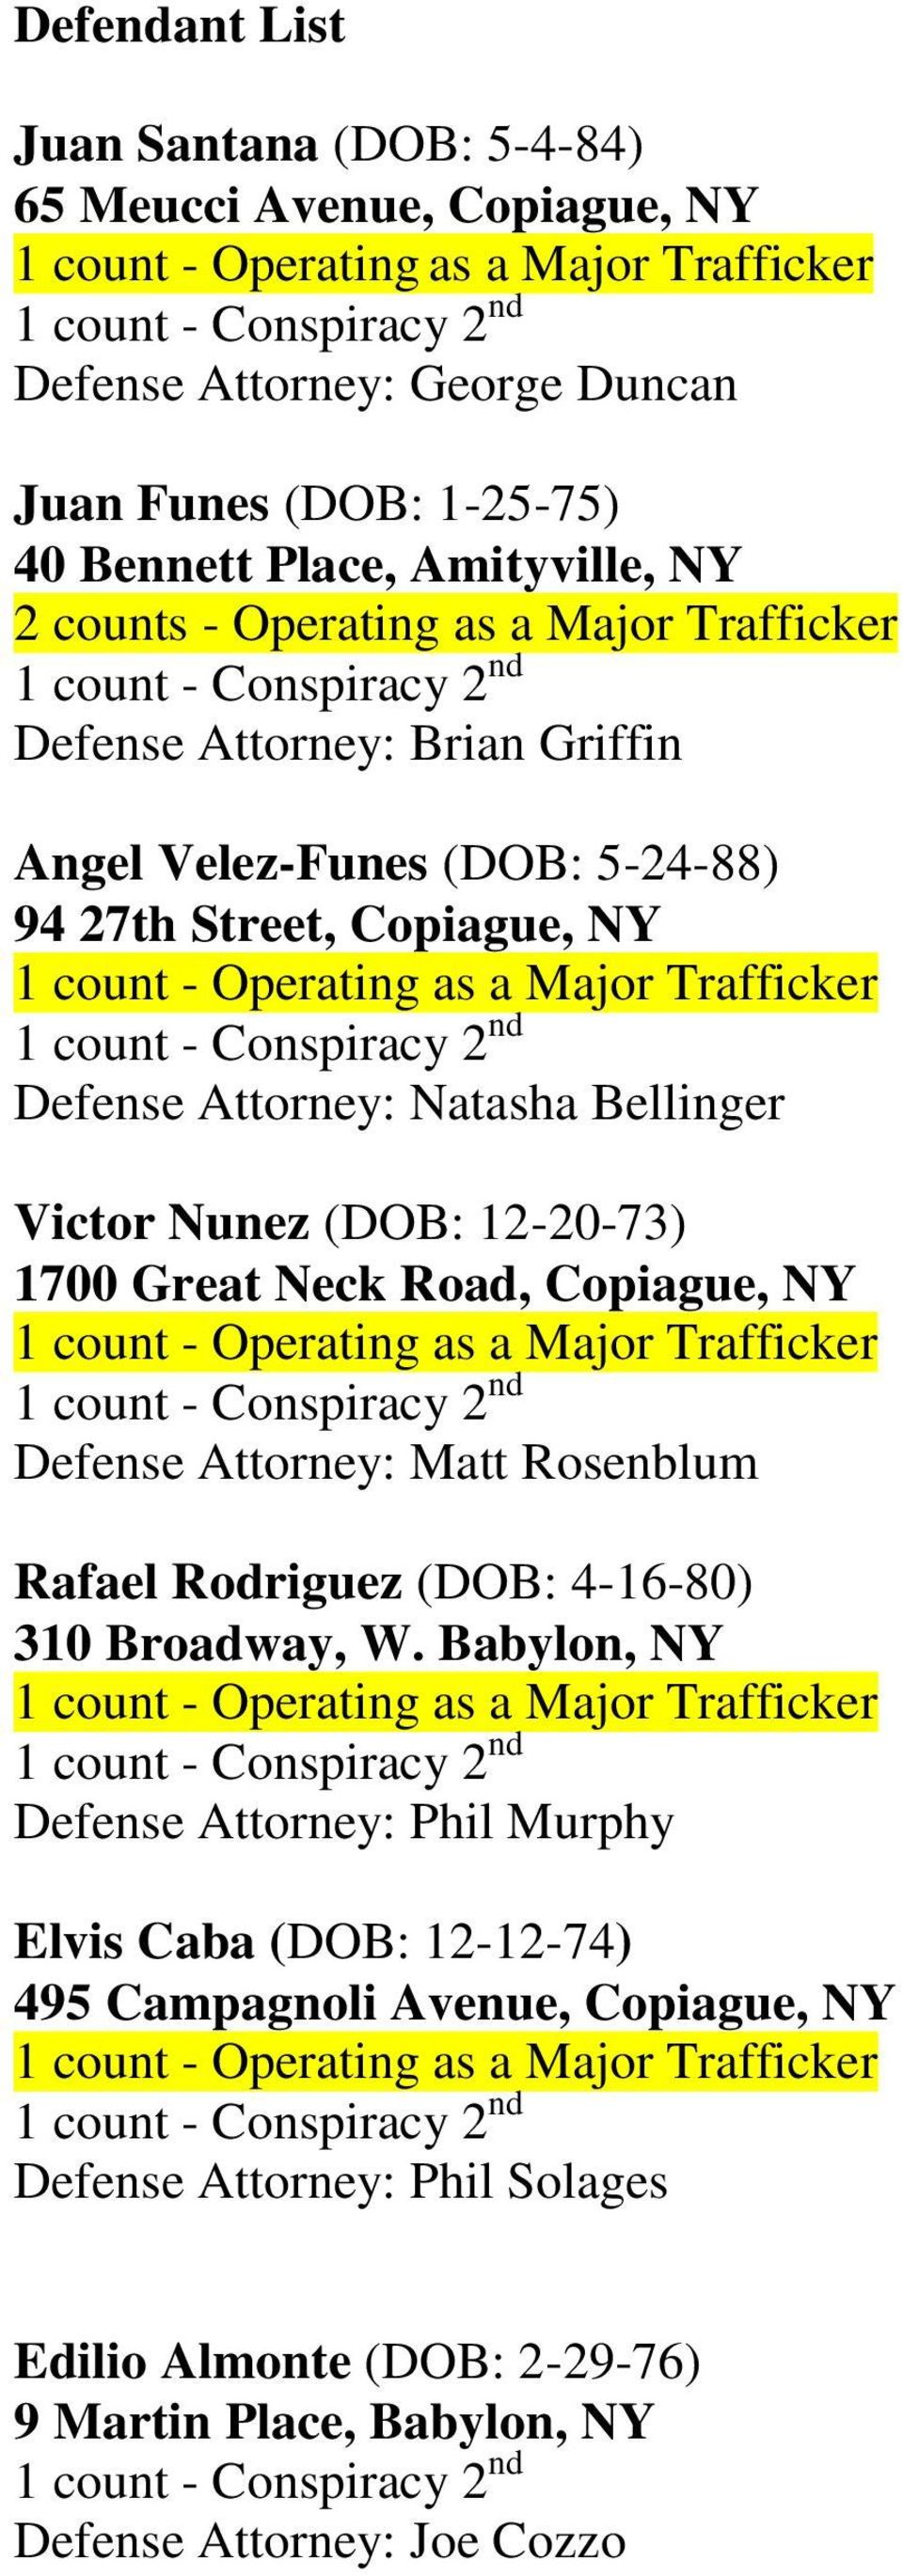 (DOB: 12-20-73) 1700 Great Neck Road, Copiague, NY Defense Attorney: Matt Rosenblum Rafael Rodriguez (DOB: 4-16-80) 310 Broadway, W.